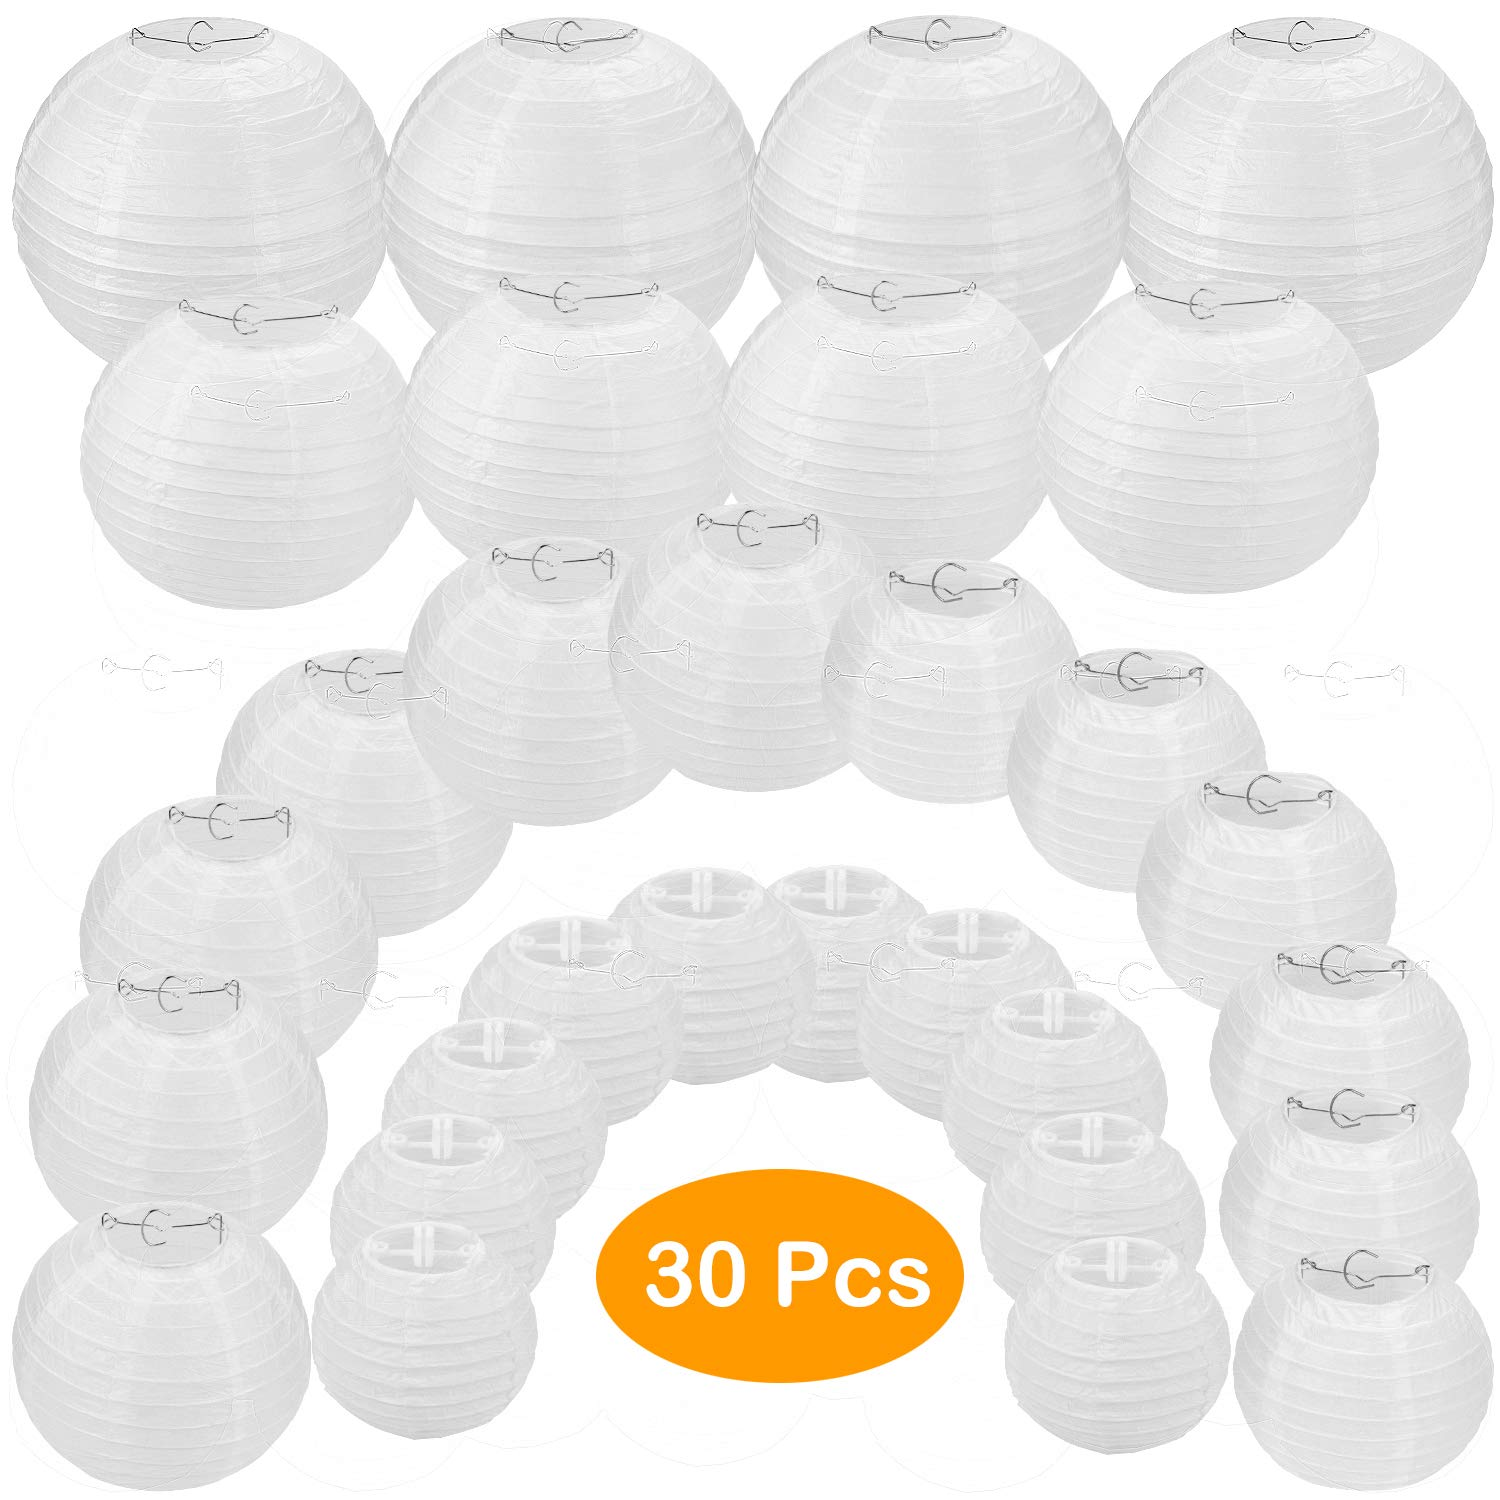 30 Pack White Paper Lanterns 4'' 6'' 8'' 10'' 12'' Assorted Sizes, CBTONE White Hanging Round Lanterns for Birthday Wedding Baby Shower Festival Christmas Party Decoration - Great for Indoor or Outdoor